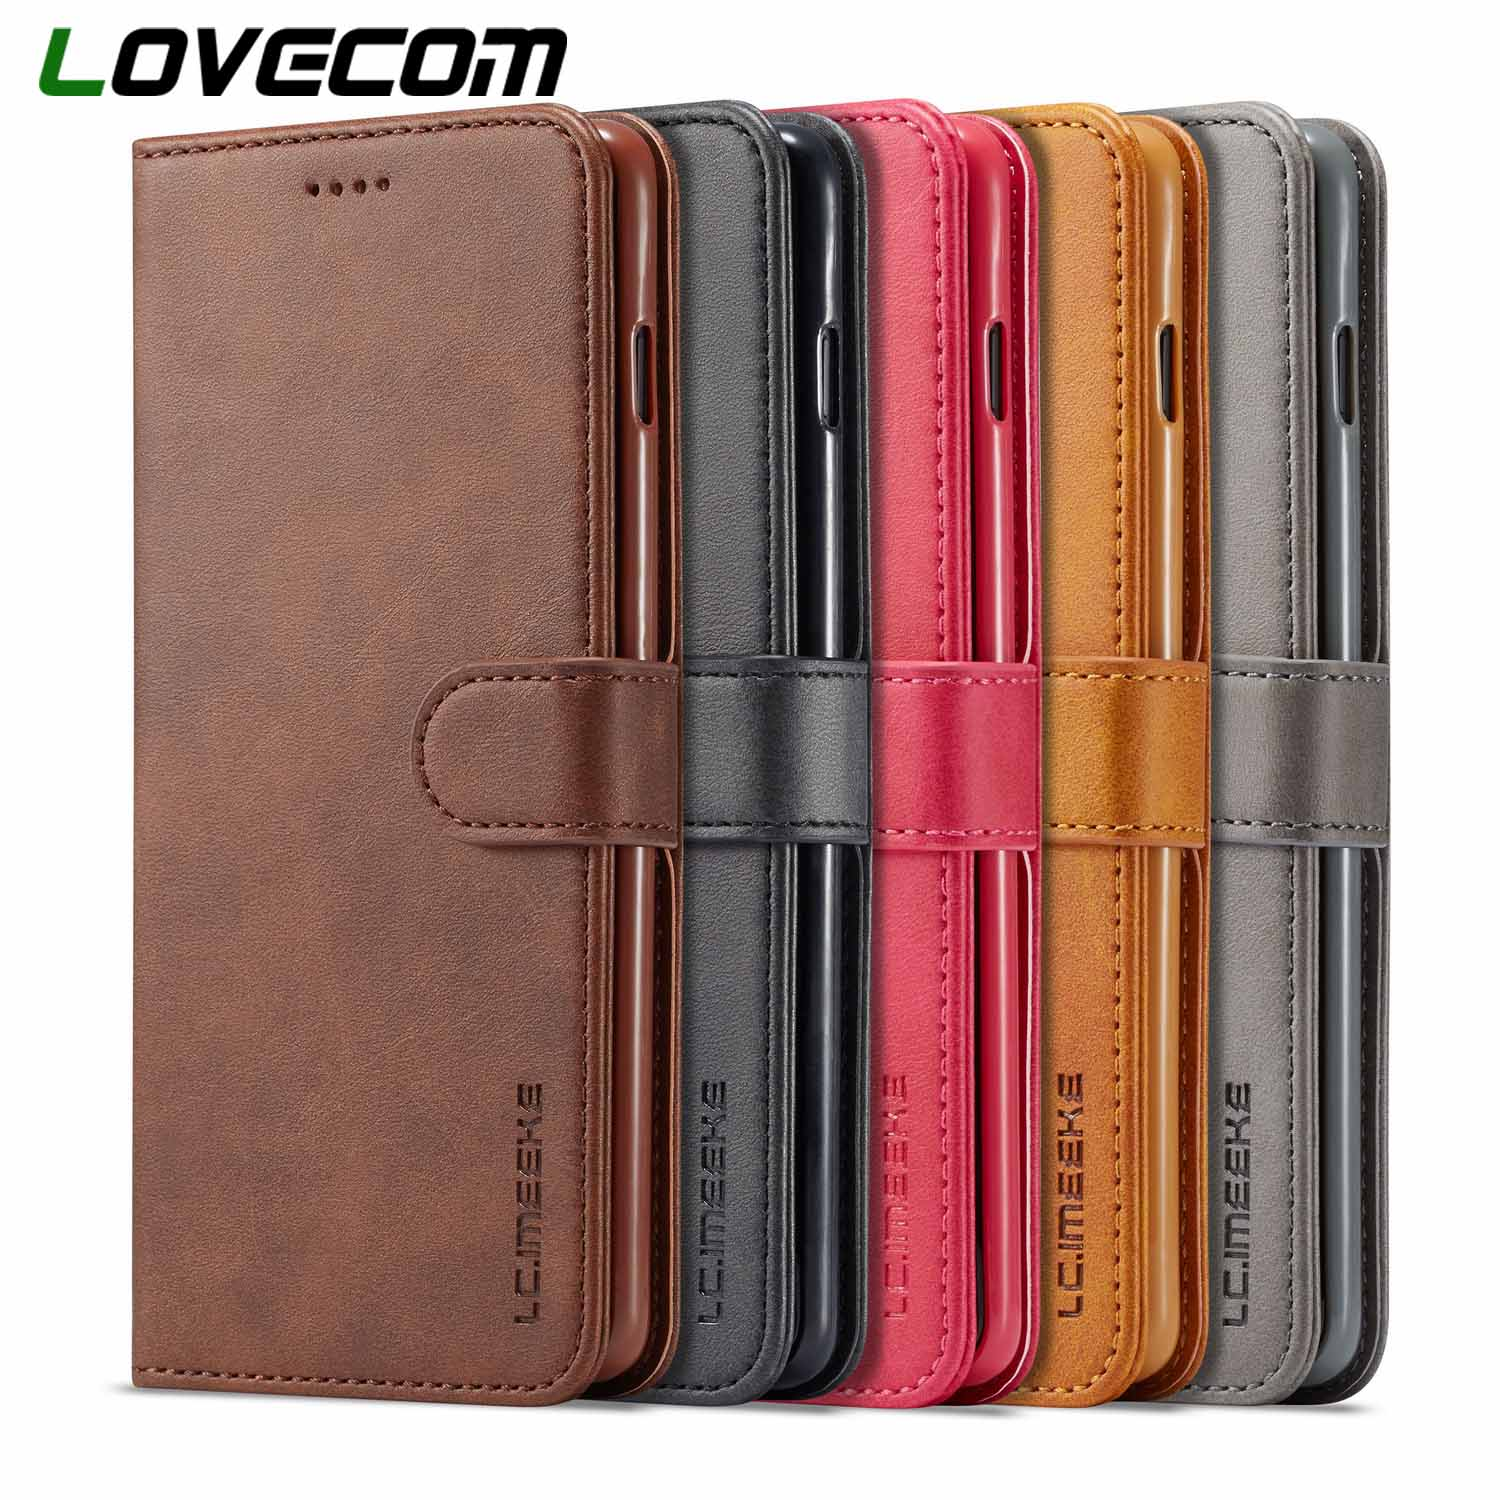 LOVECOM Vintage <font><b>Leather</b></font> Wallet <font><b>Flip</b></font> Phone <font><b>Cases</b></font> For <font><b>Samsung</b></font> Galaxy A10 A20 <font><b>A40</b></font> A50 A60 M30 S10 Plus S10e S9 Note 8 9 Back Cover image